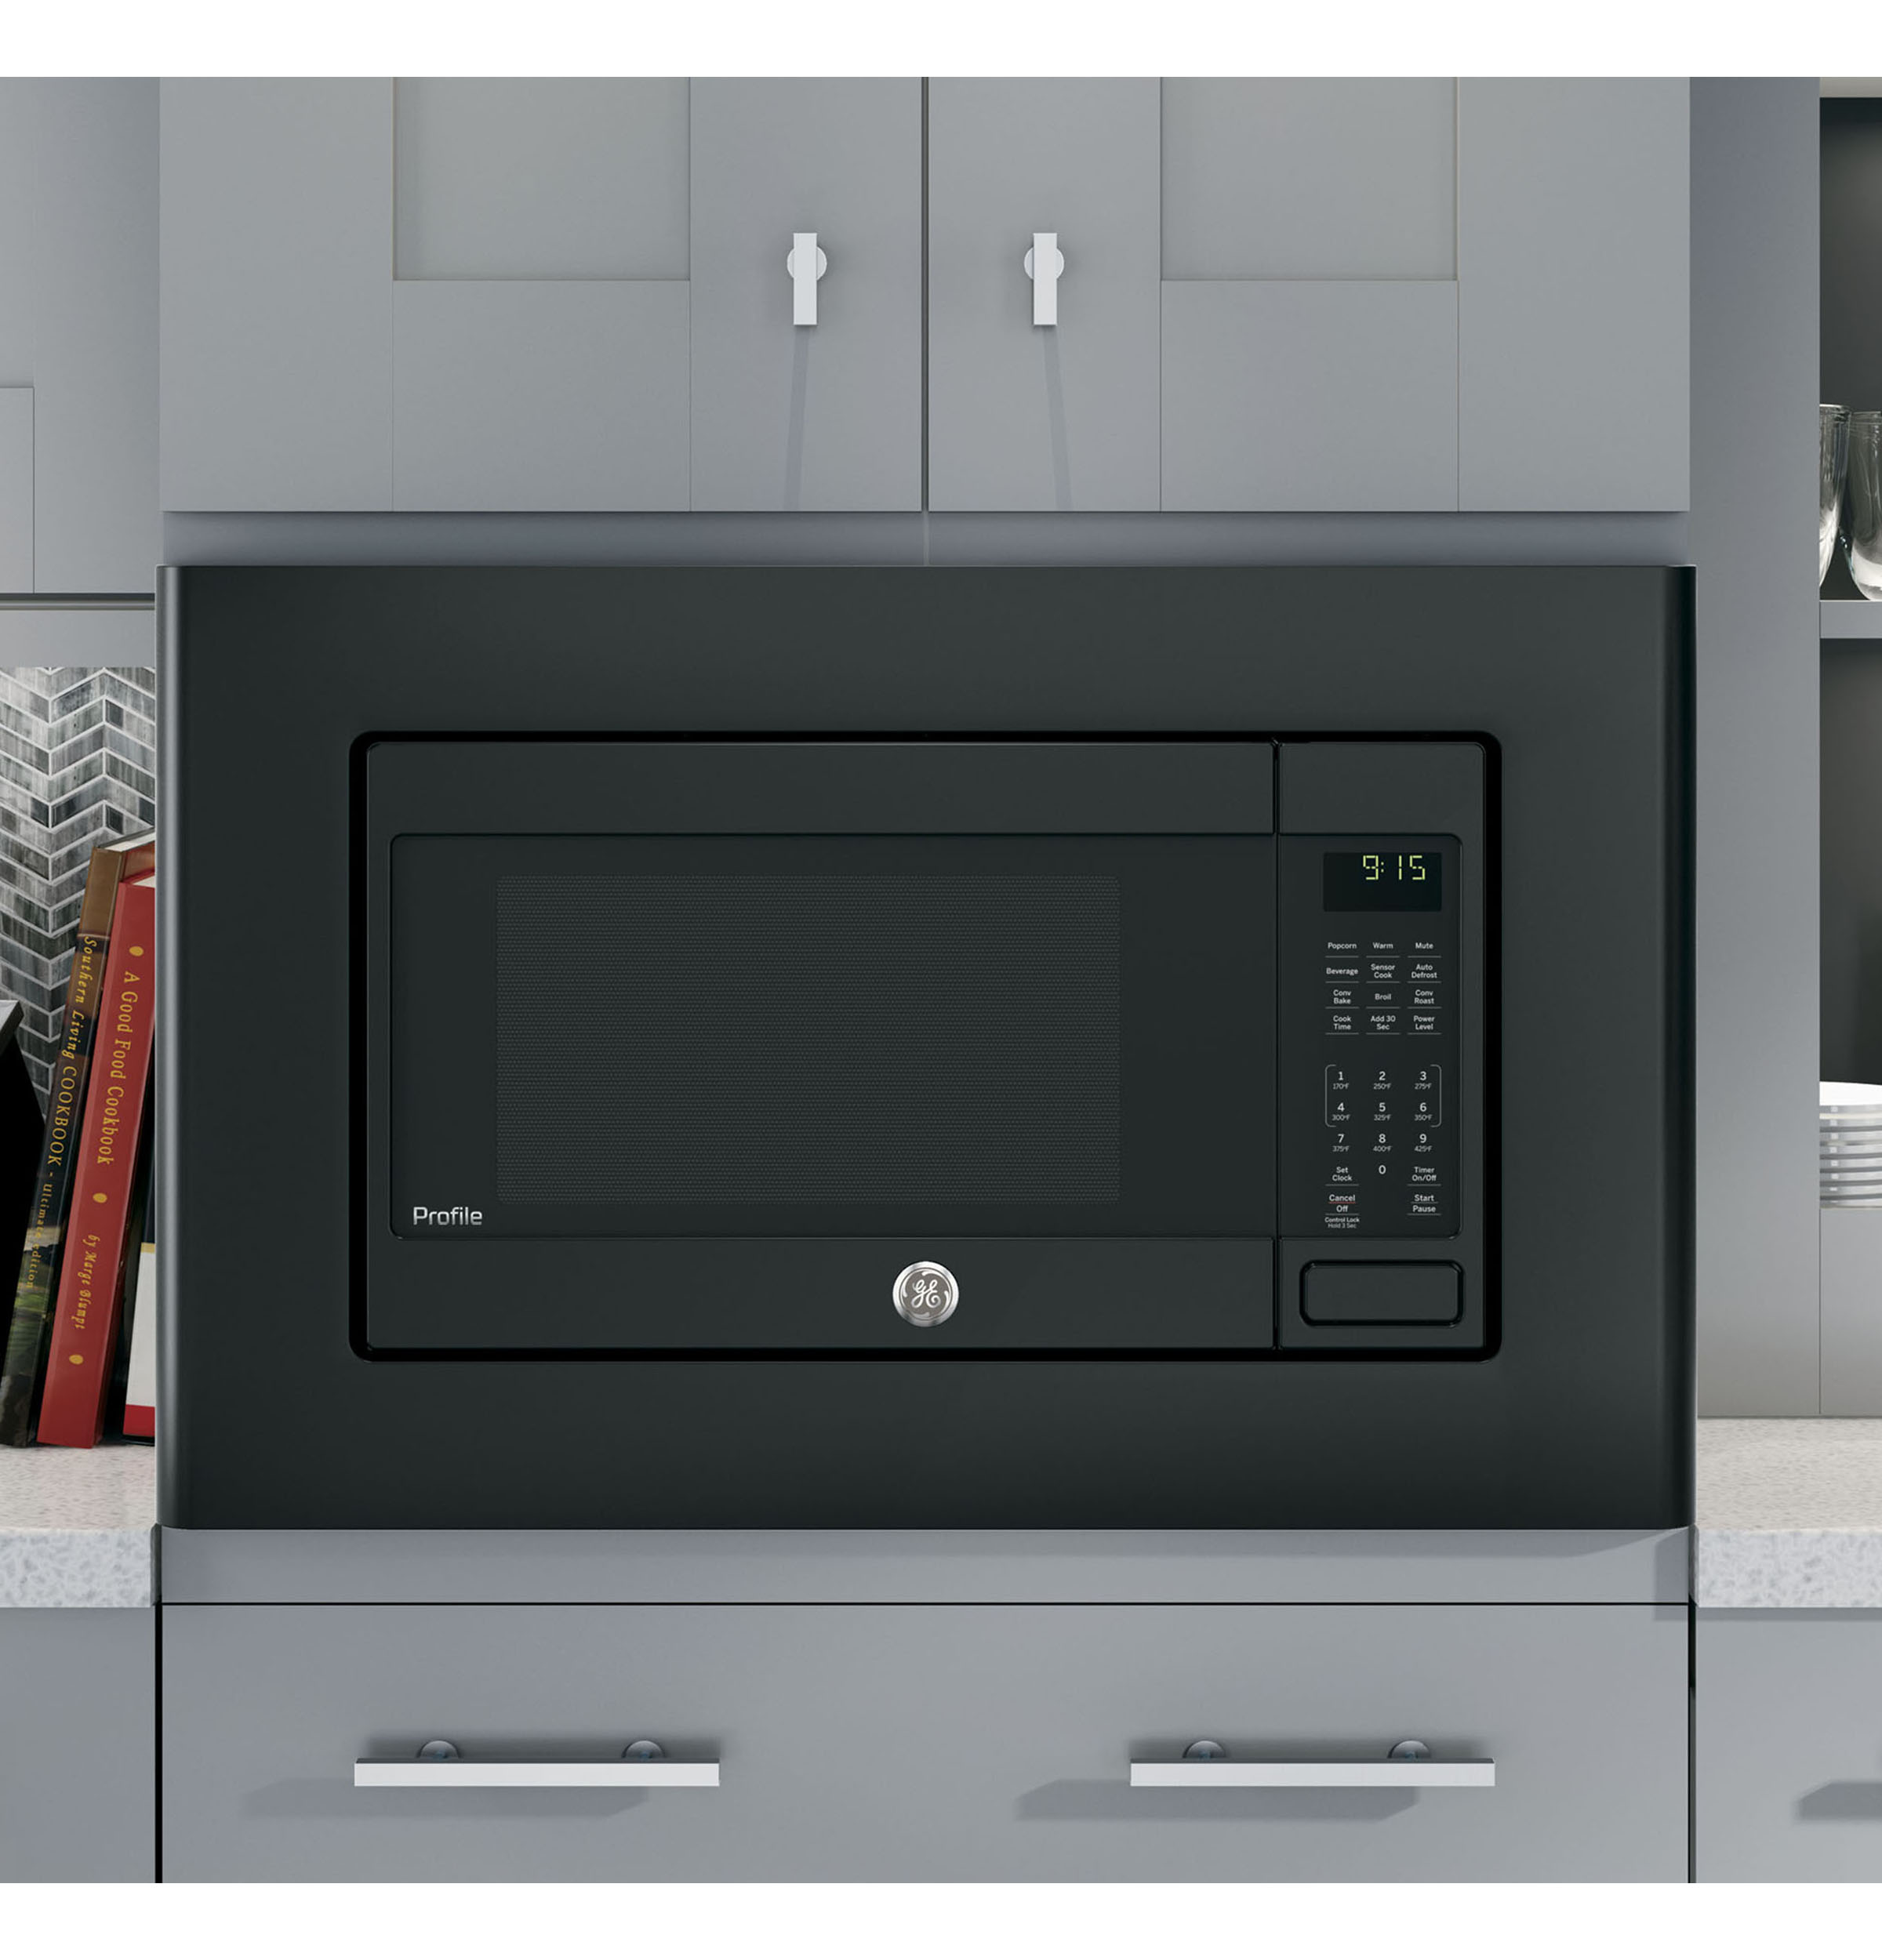 Model: PEB9159DJBB | GE Profile GE Profile™ Series 1.5 Cu. Ft. Countertop Convection/Microwave Oven